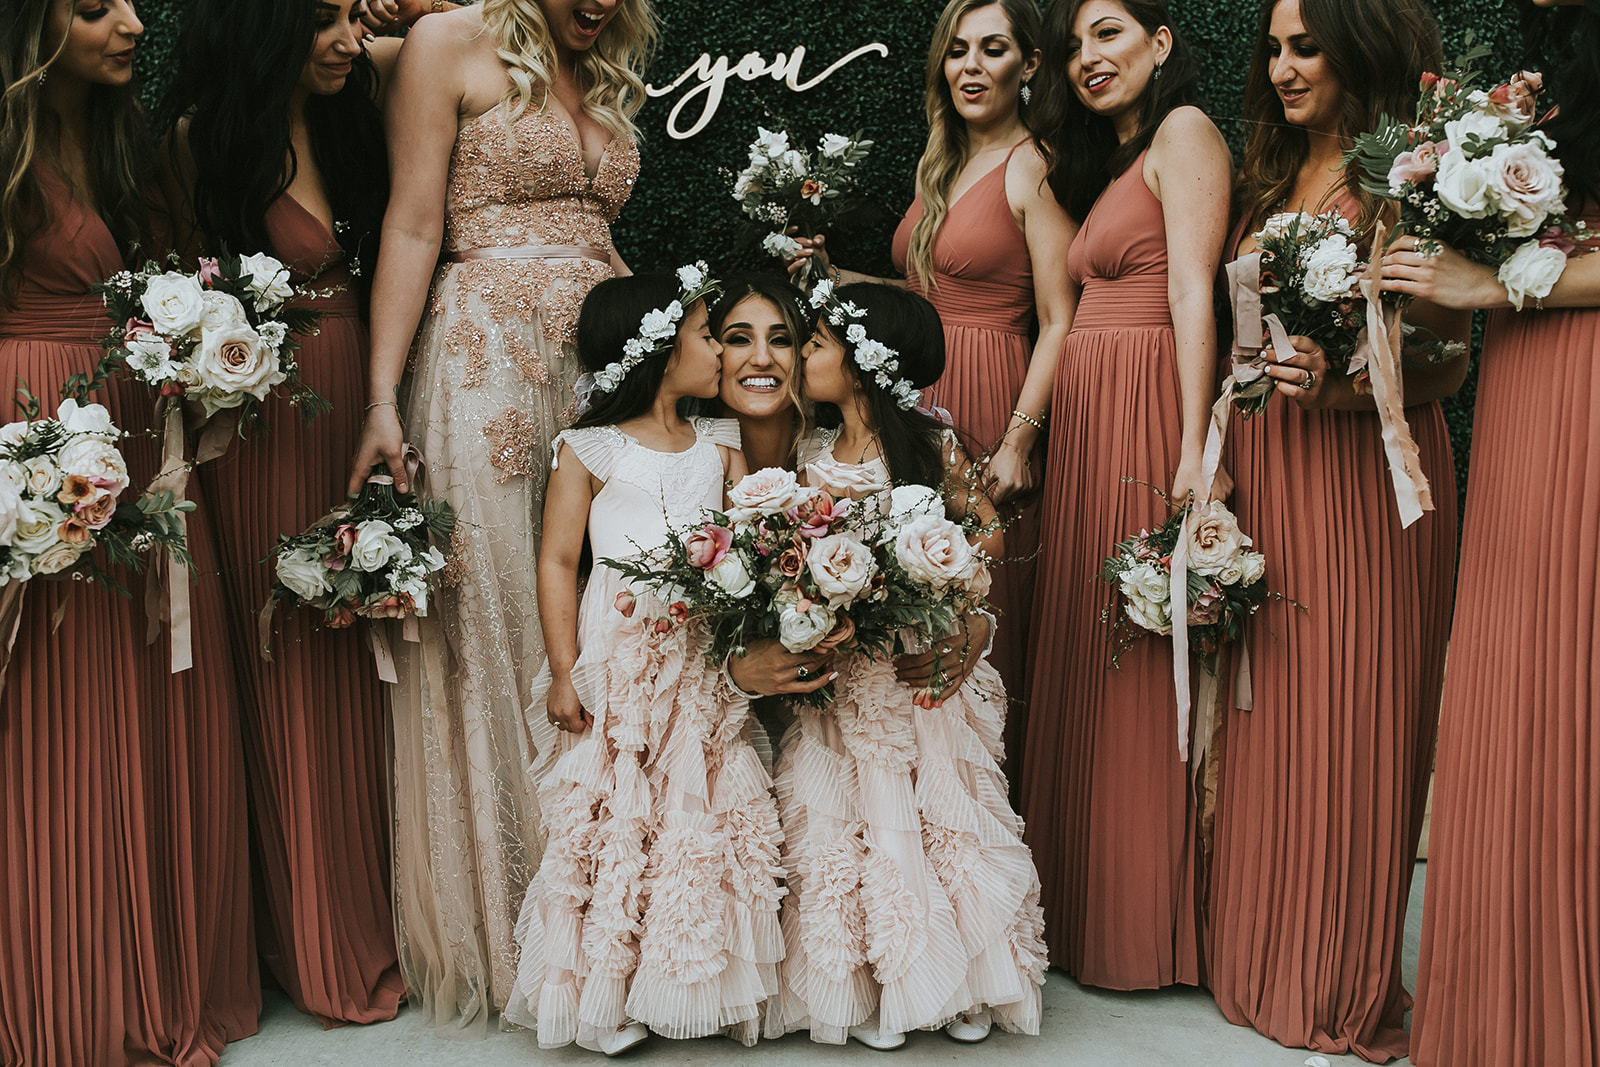 bridal party flowers 4.jpg